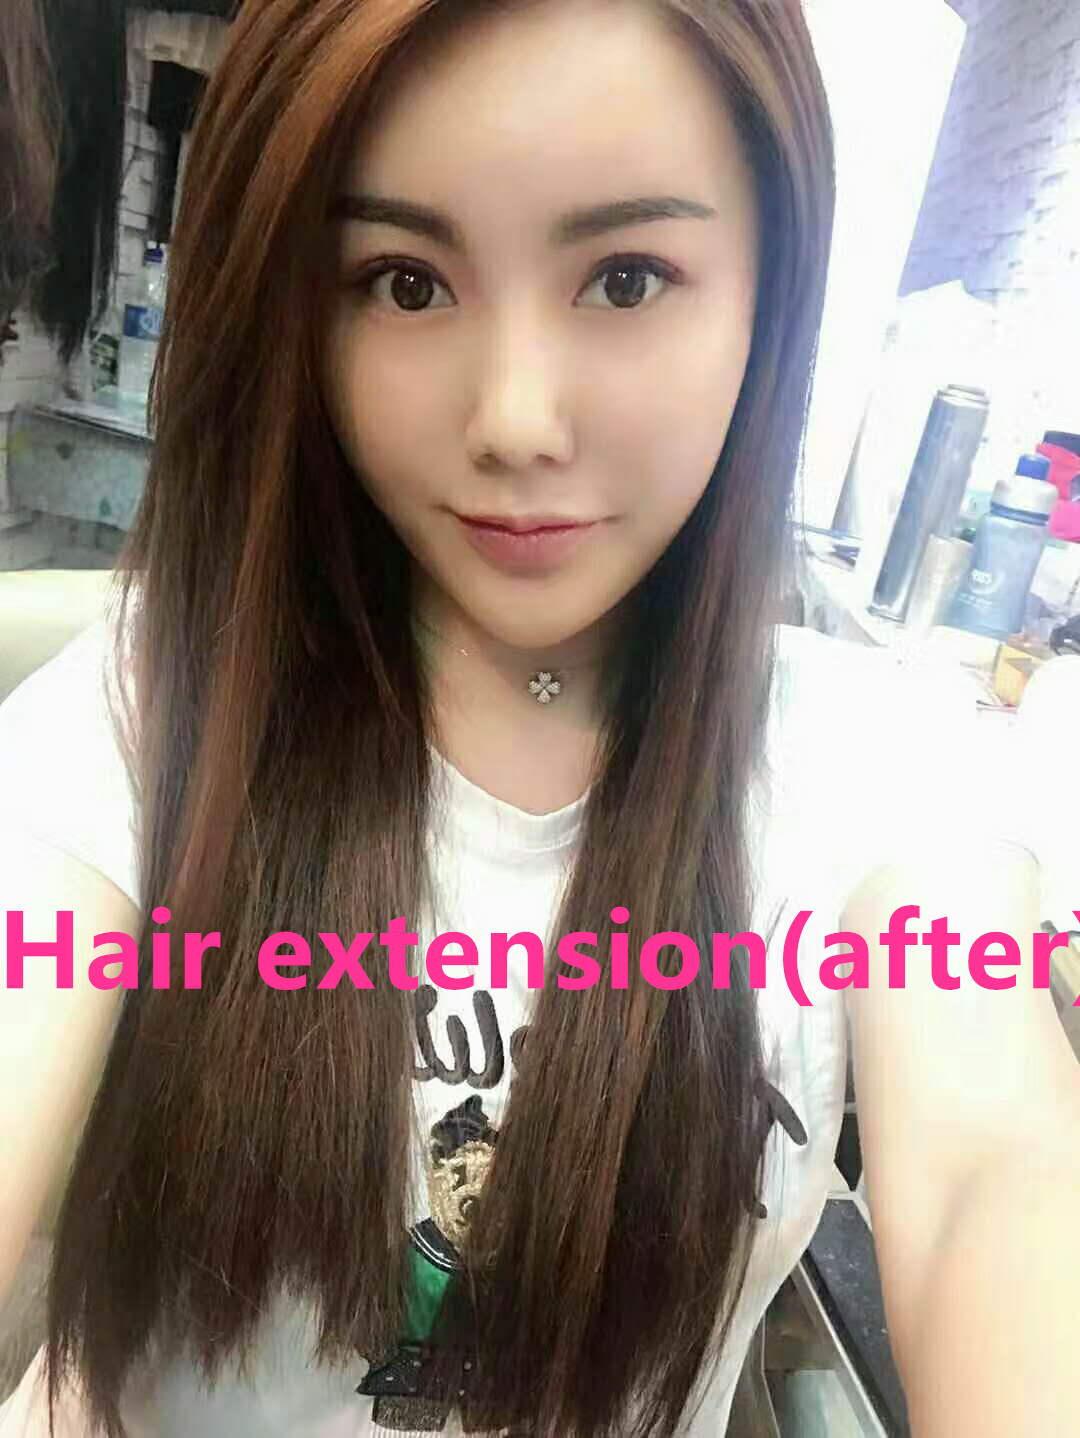 Hair extension(after).jpg